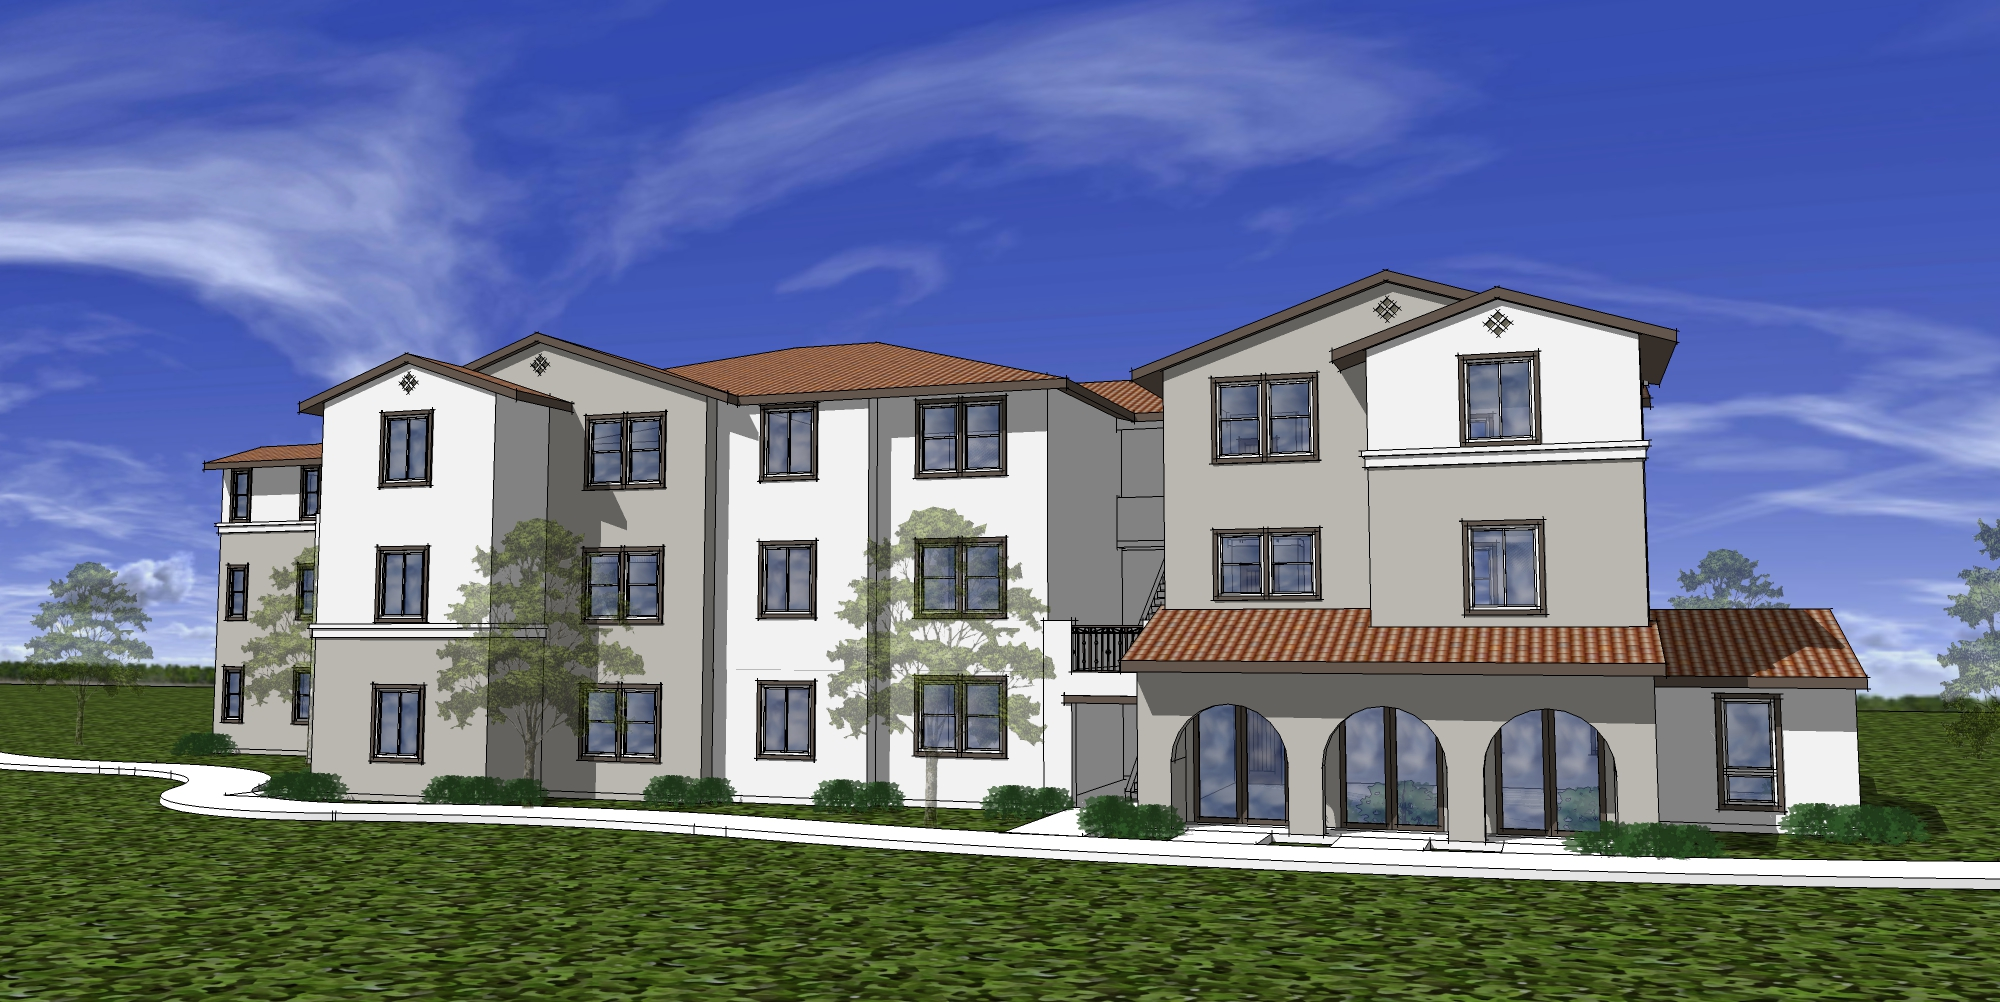 Affordable Apartments In Oceanside Ca